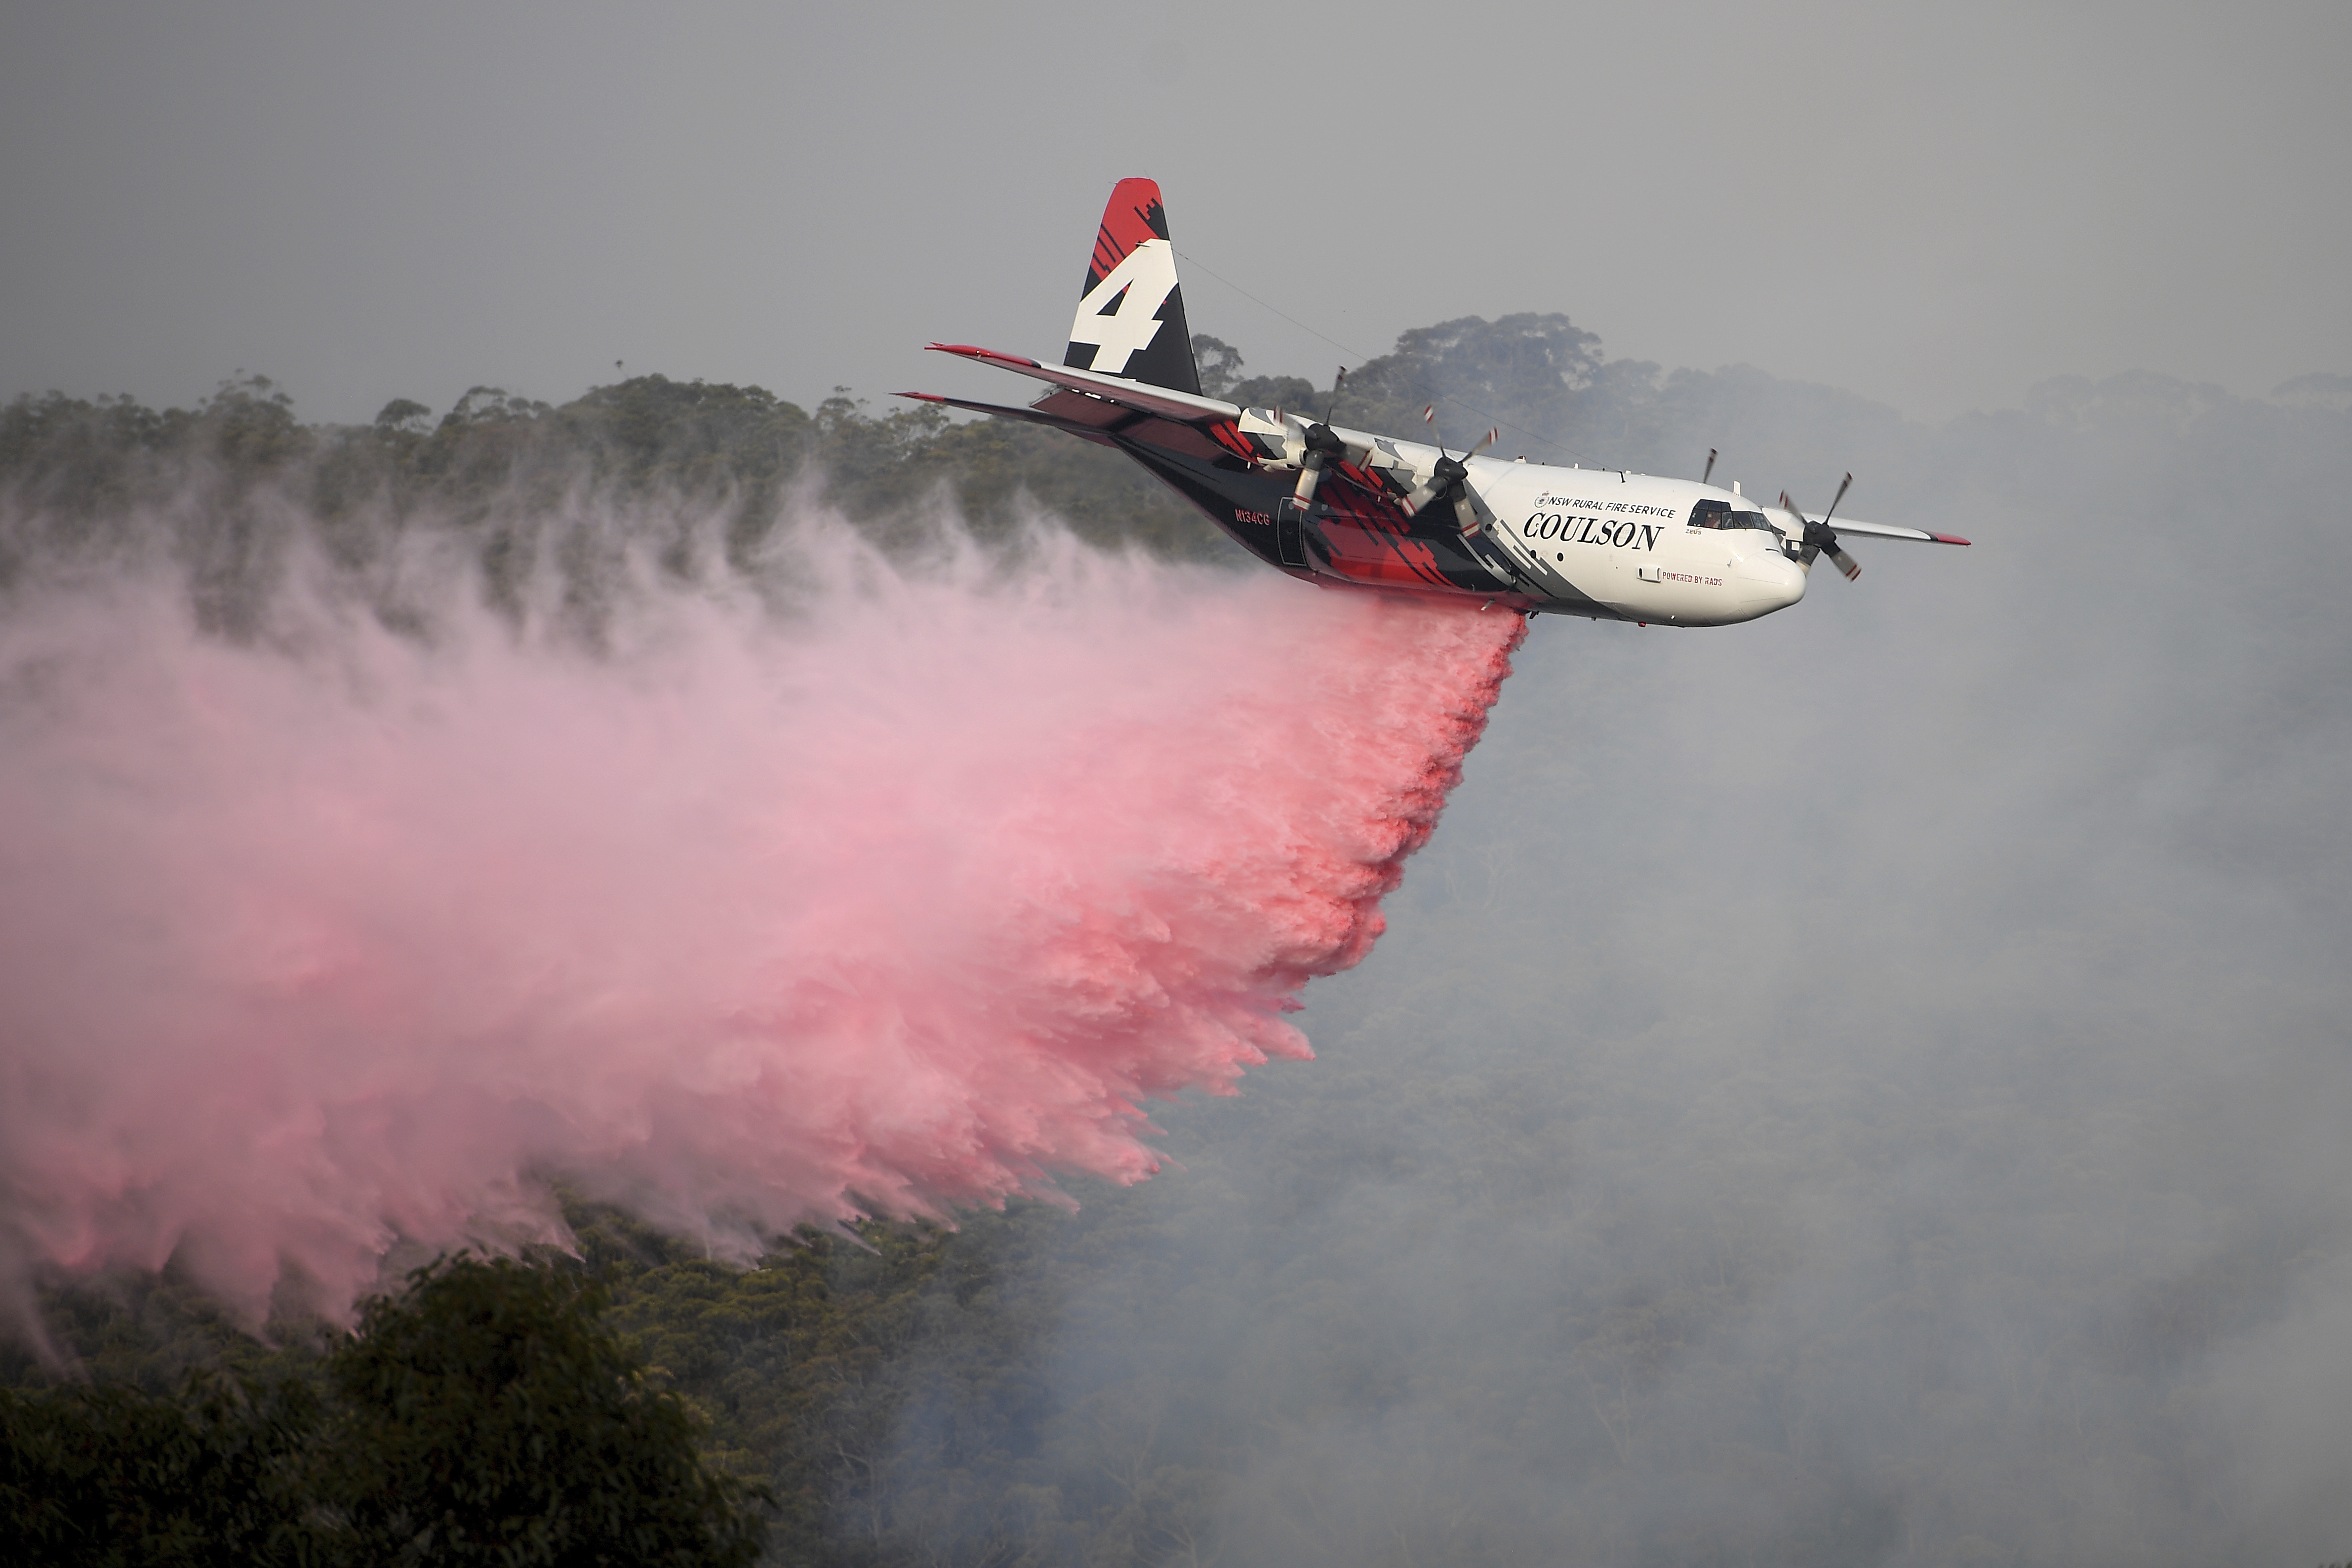 Australia Works To Recover Bodies Of 3 Americans From Air Tanker Crash